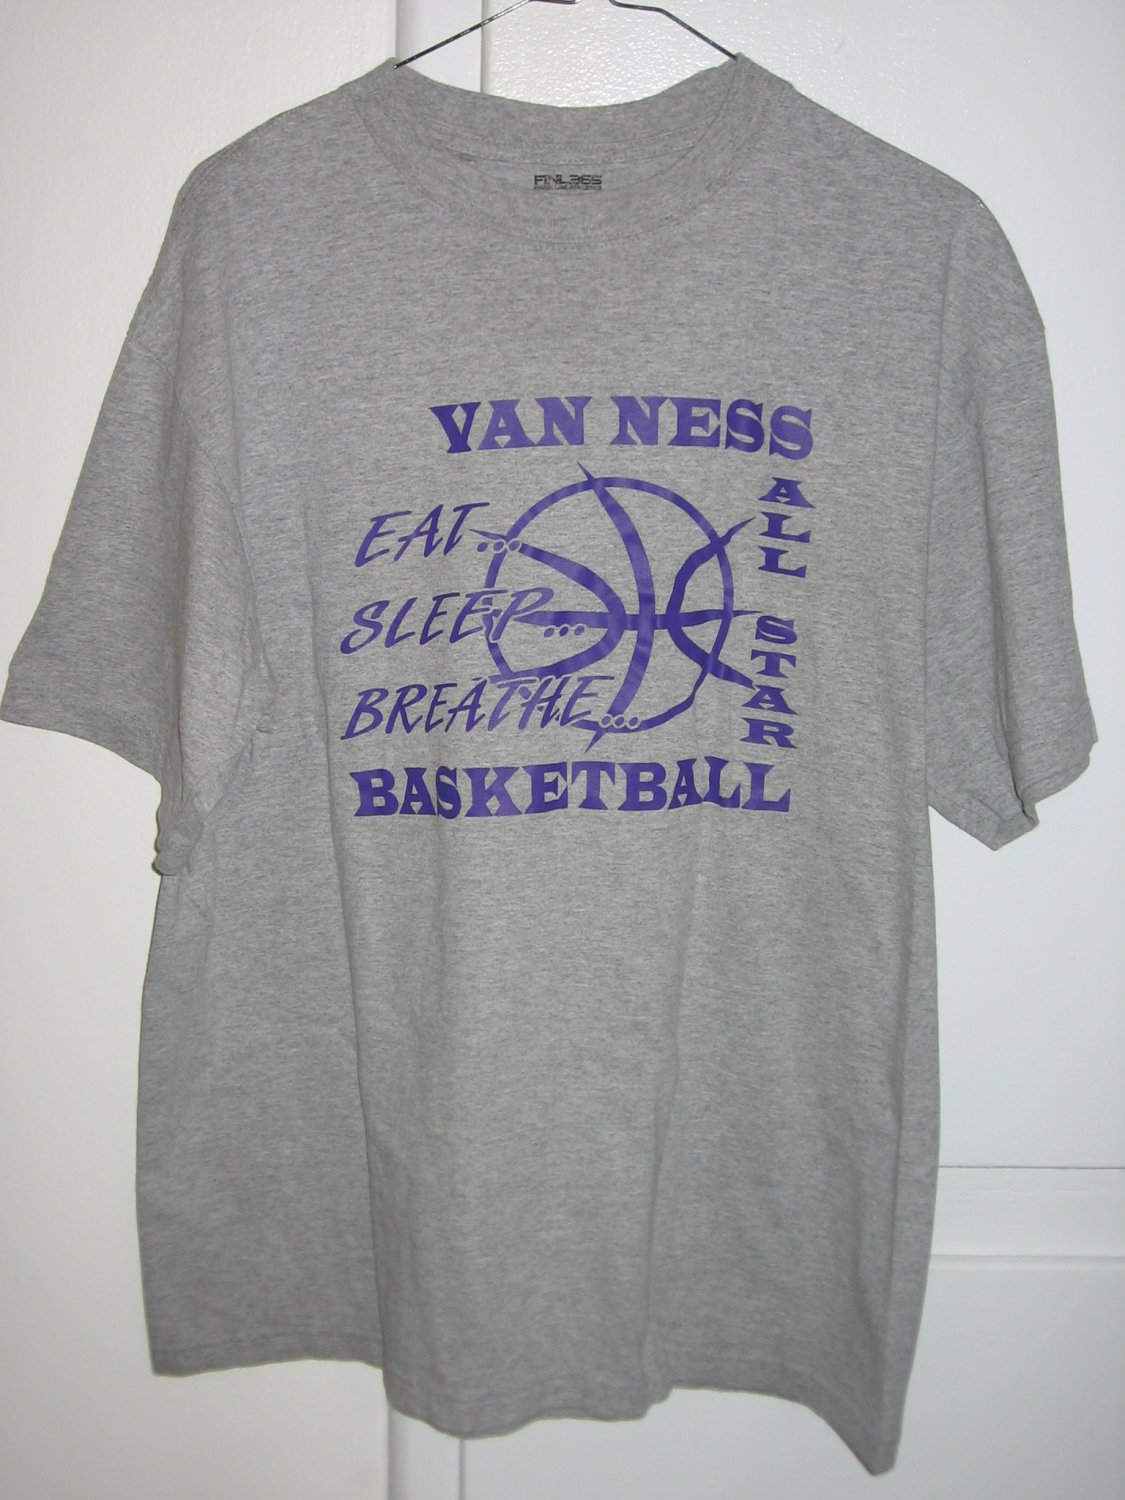 Van Ness All Star Basketball T-Shirt Size Large L FINL365 Finish Line Athletics